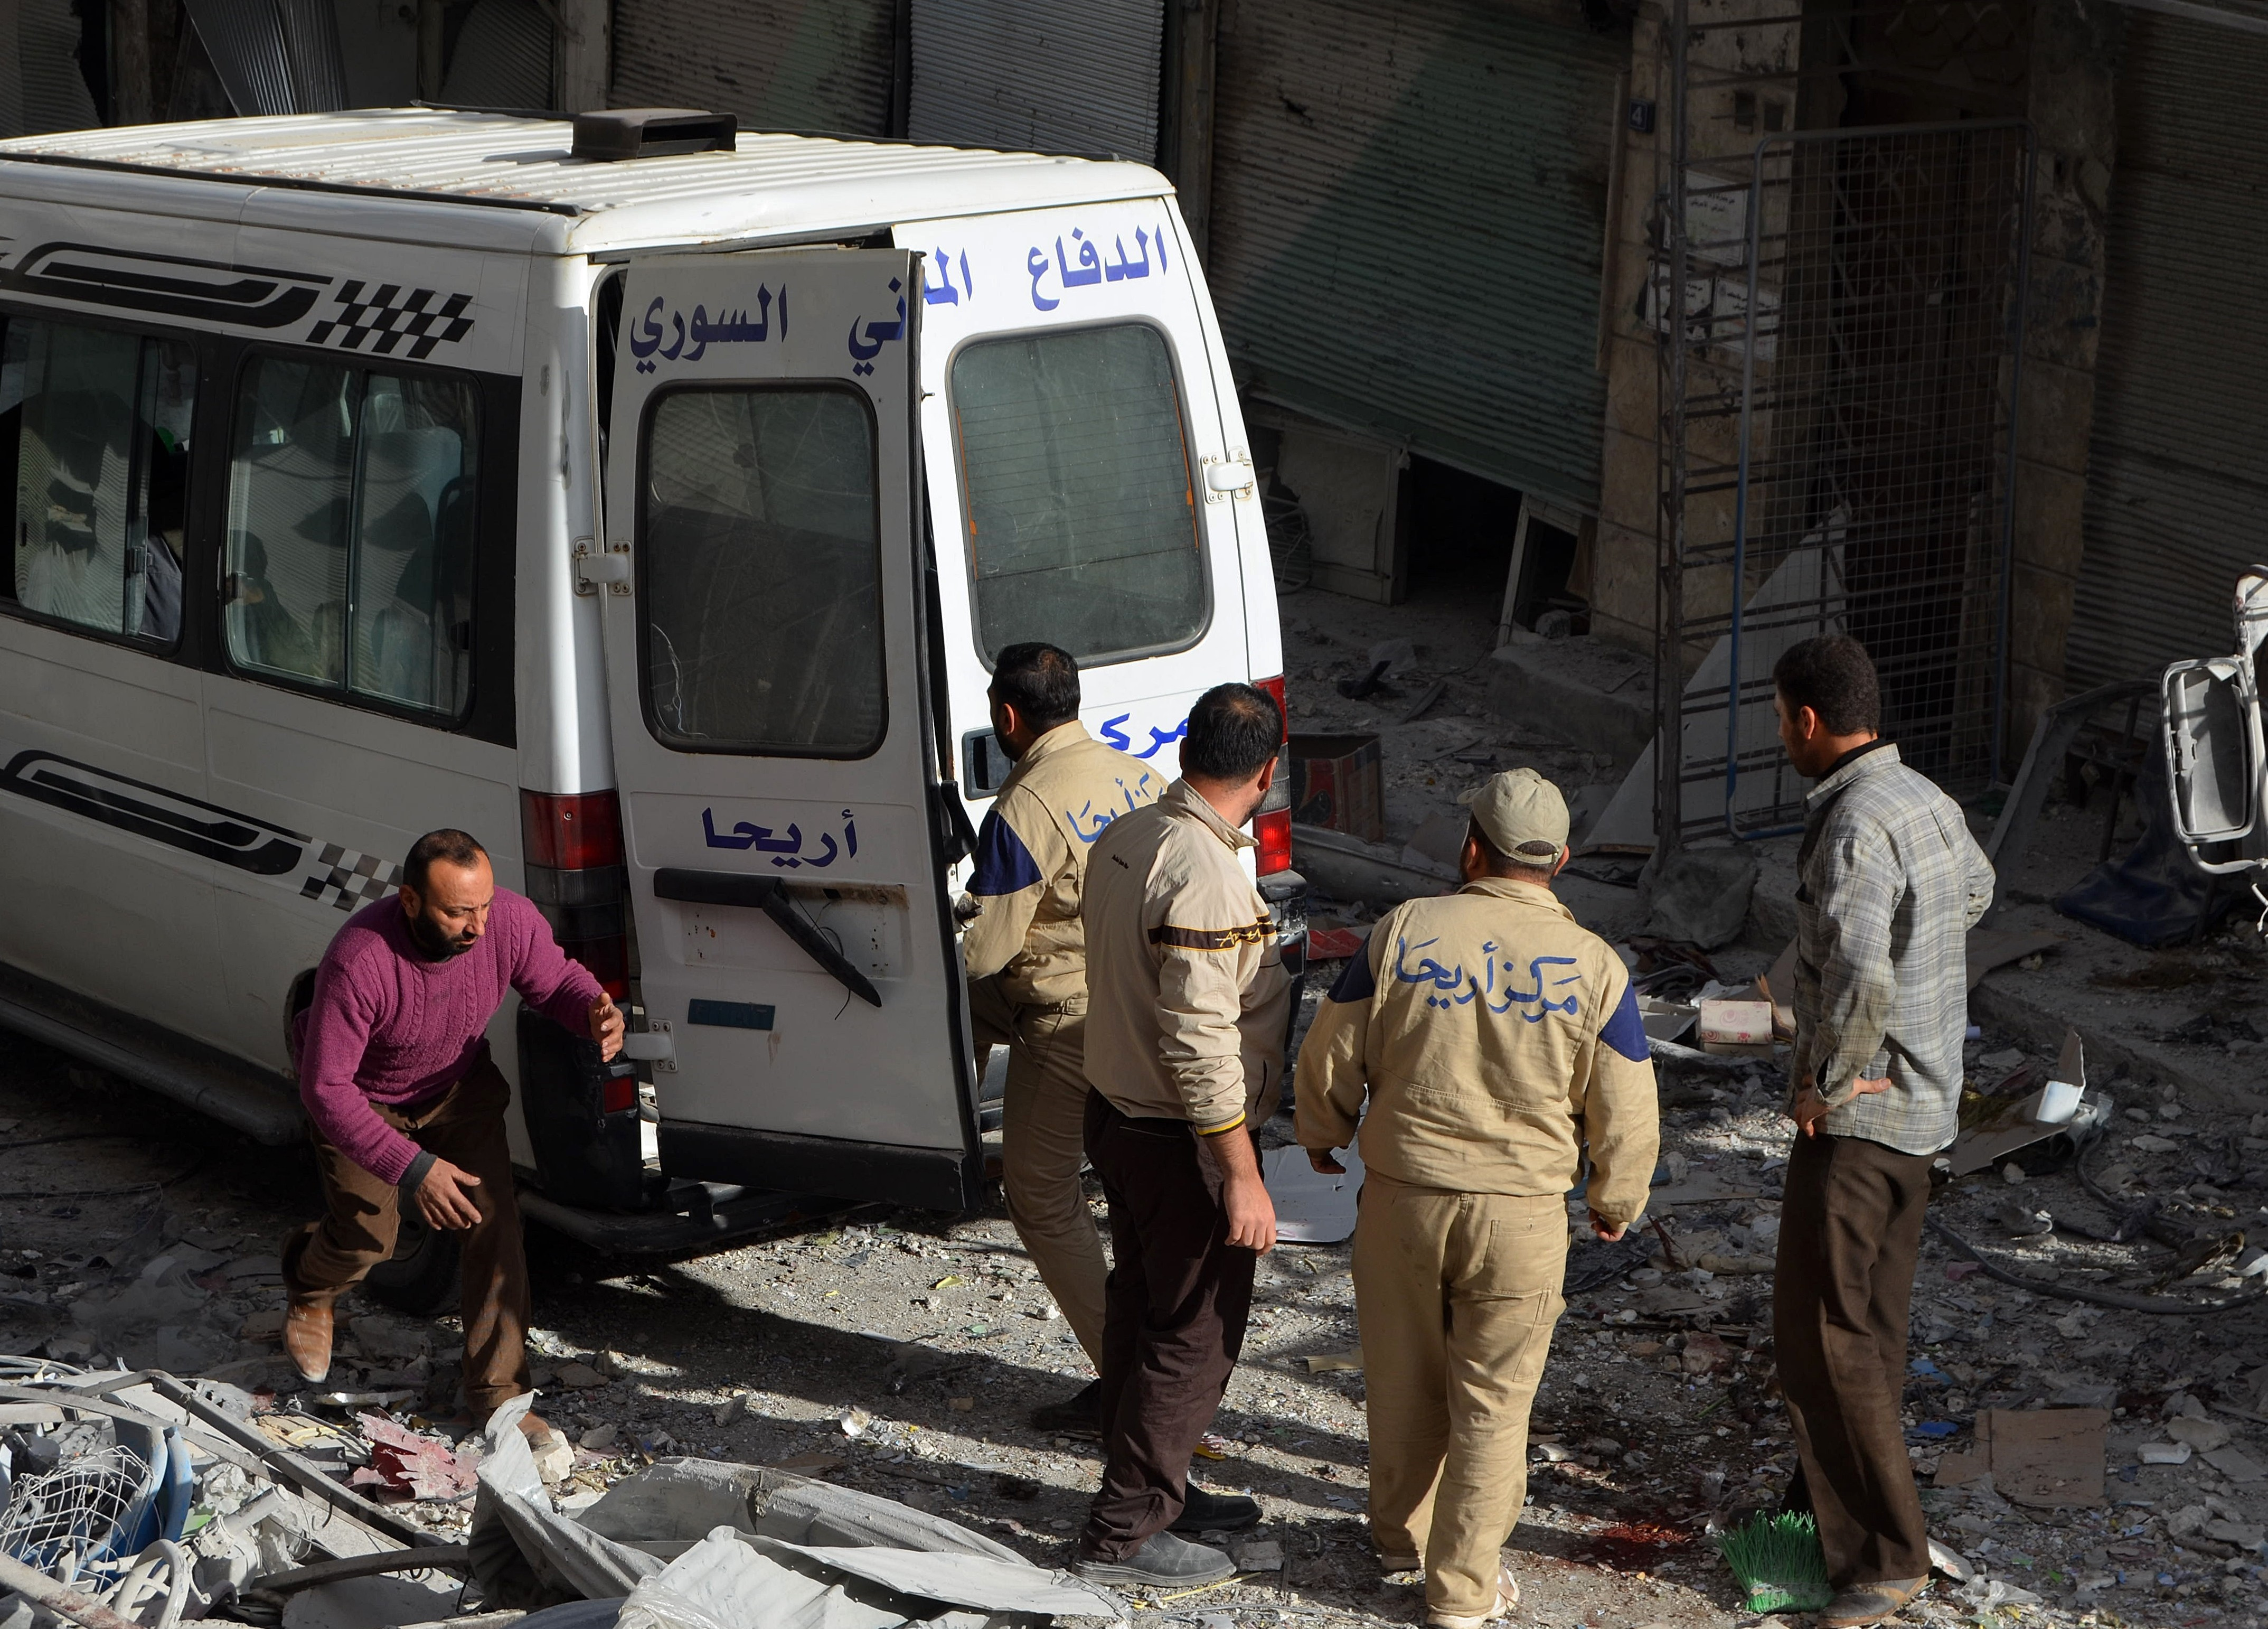 Syrian civil defense members carry a wounded man into an ambulance following the Russian airstrikes targeting a market and residential area in Ariha town Idlib, northern Syria on Nov. 29, 2015.